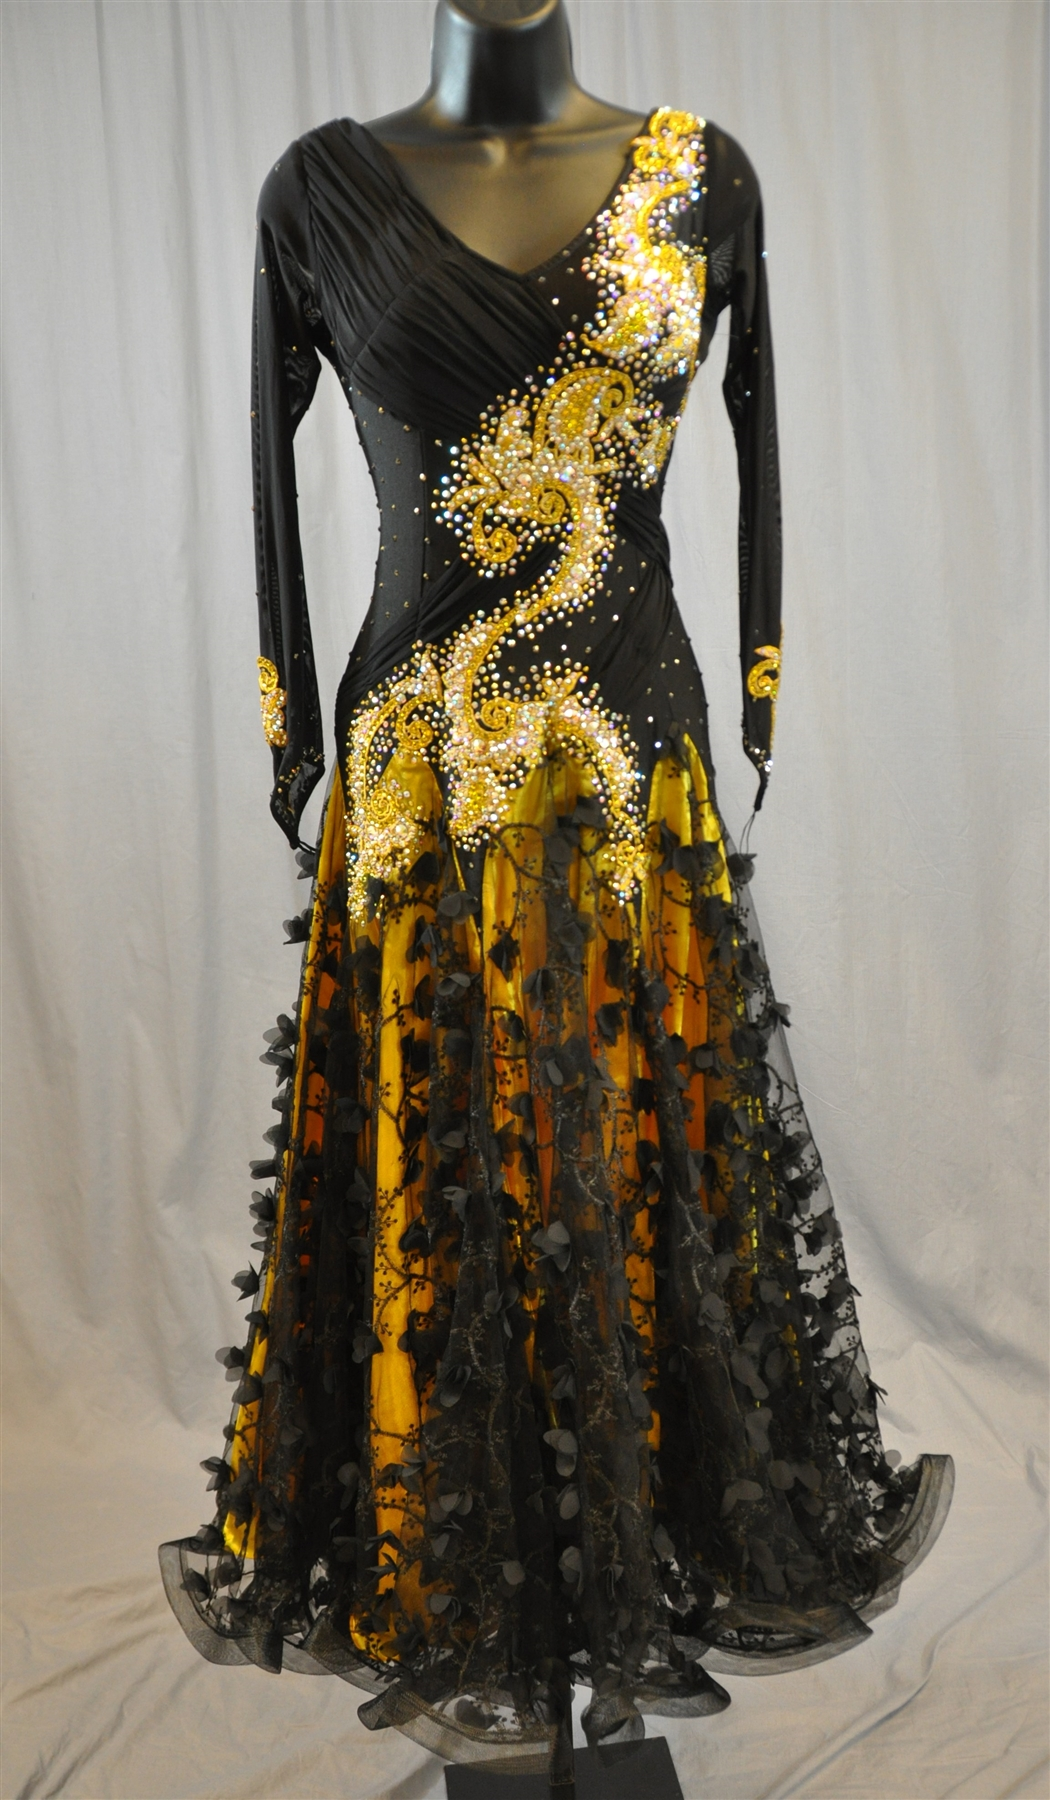 Elegant Black And Gold Long Sleeves Ballroom Dress